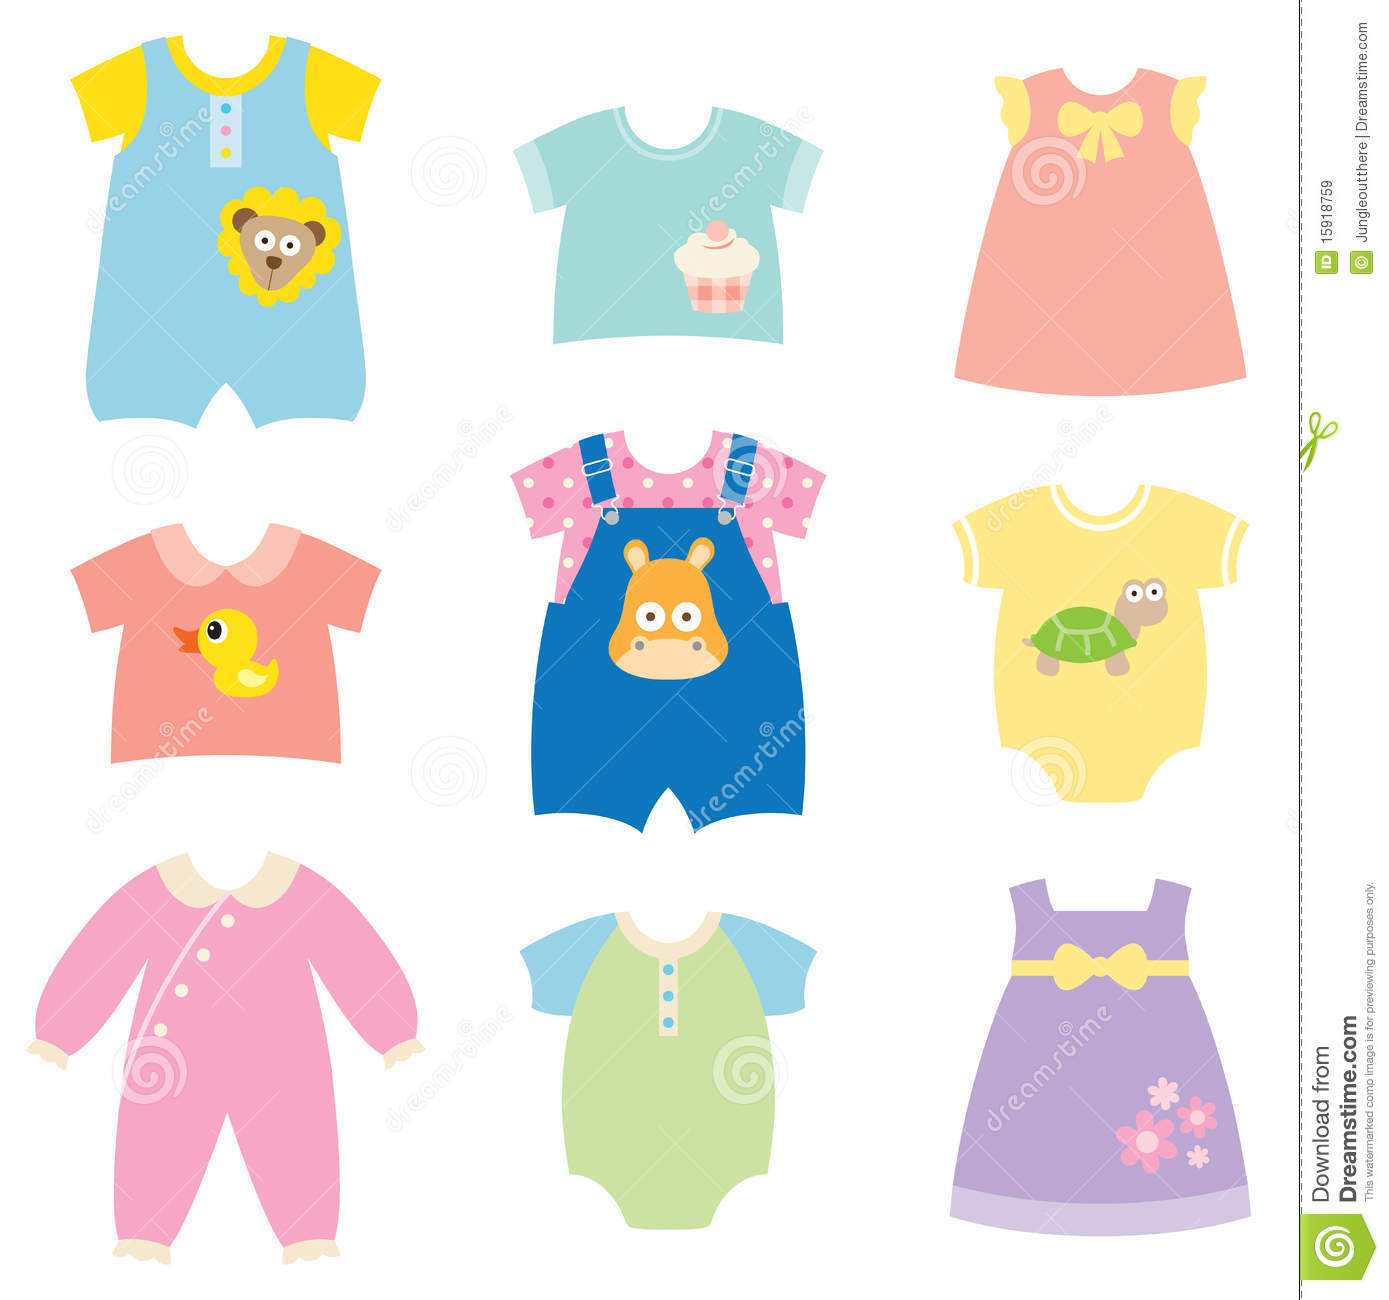 Free kids shirt download. Pajamas clipart baby doll clothes